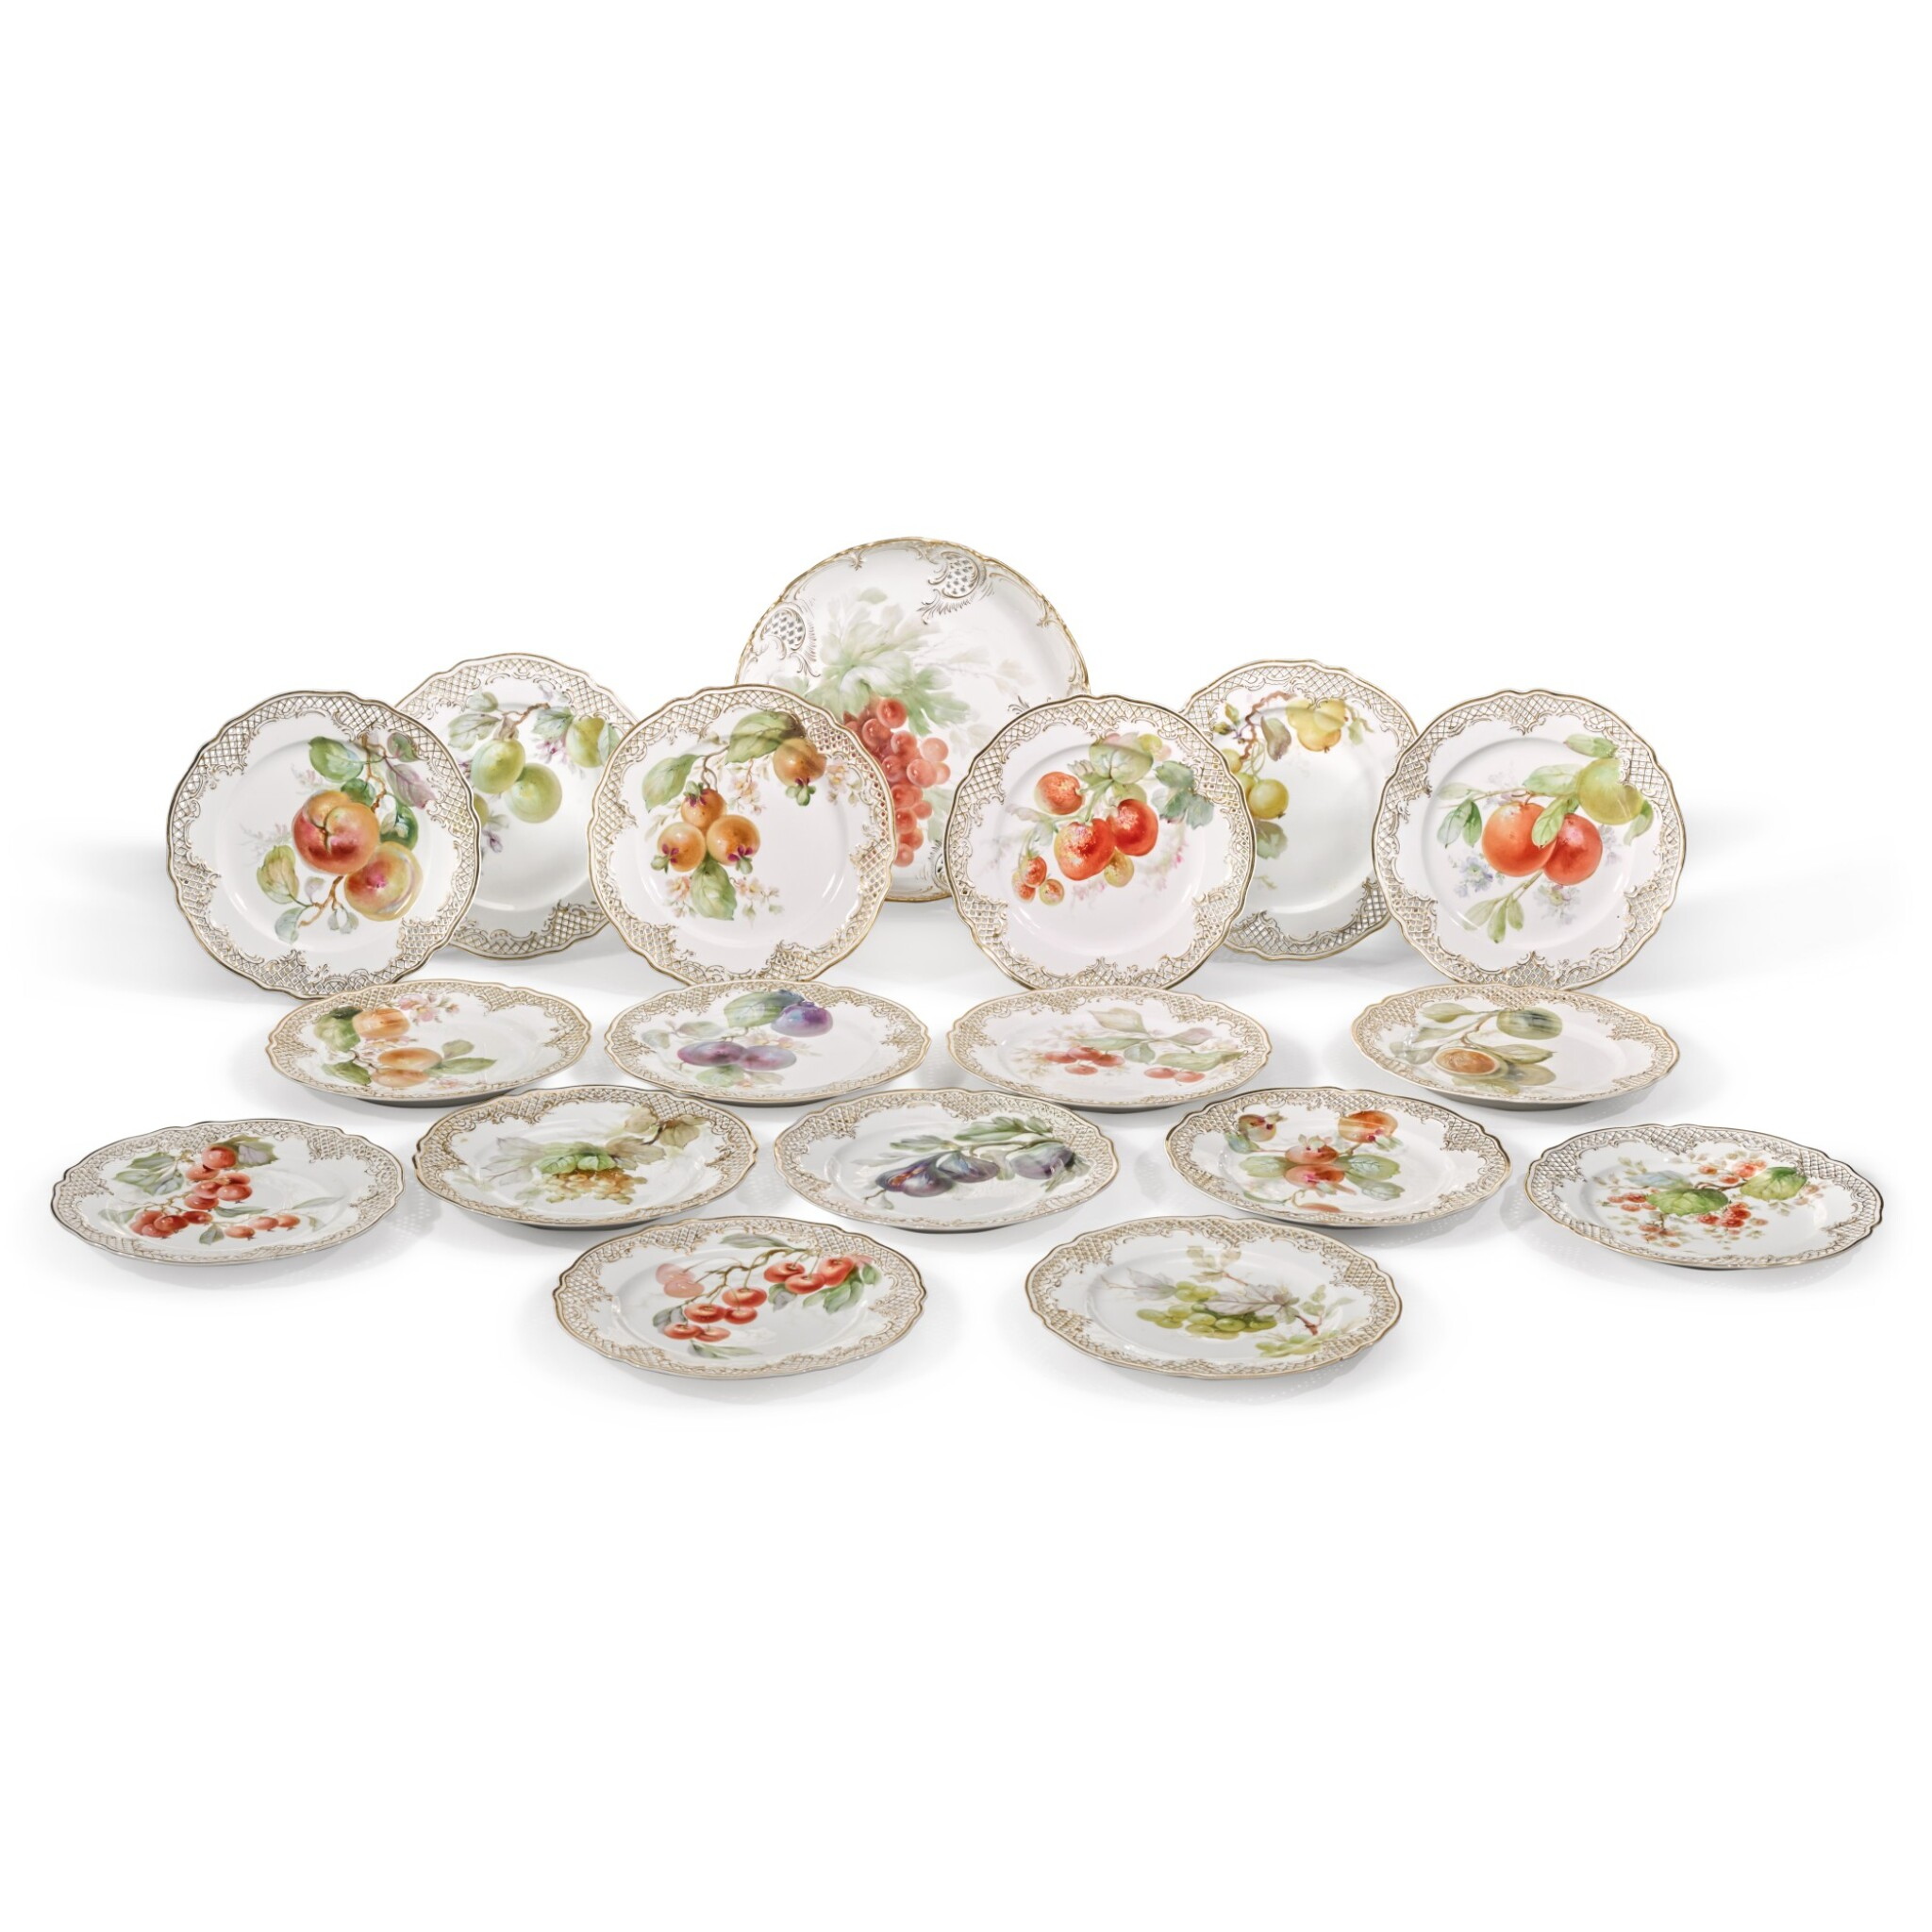 View full screen - View 1 of Lot 137. A set of seventeen Nymphenburg pierced plates, circa 1900.